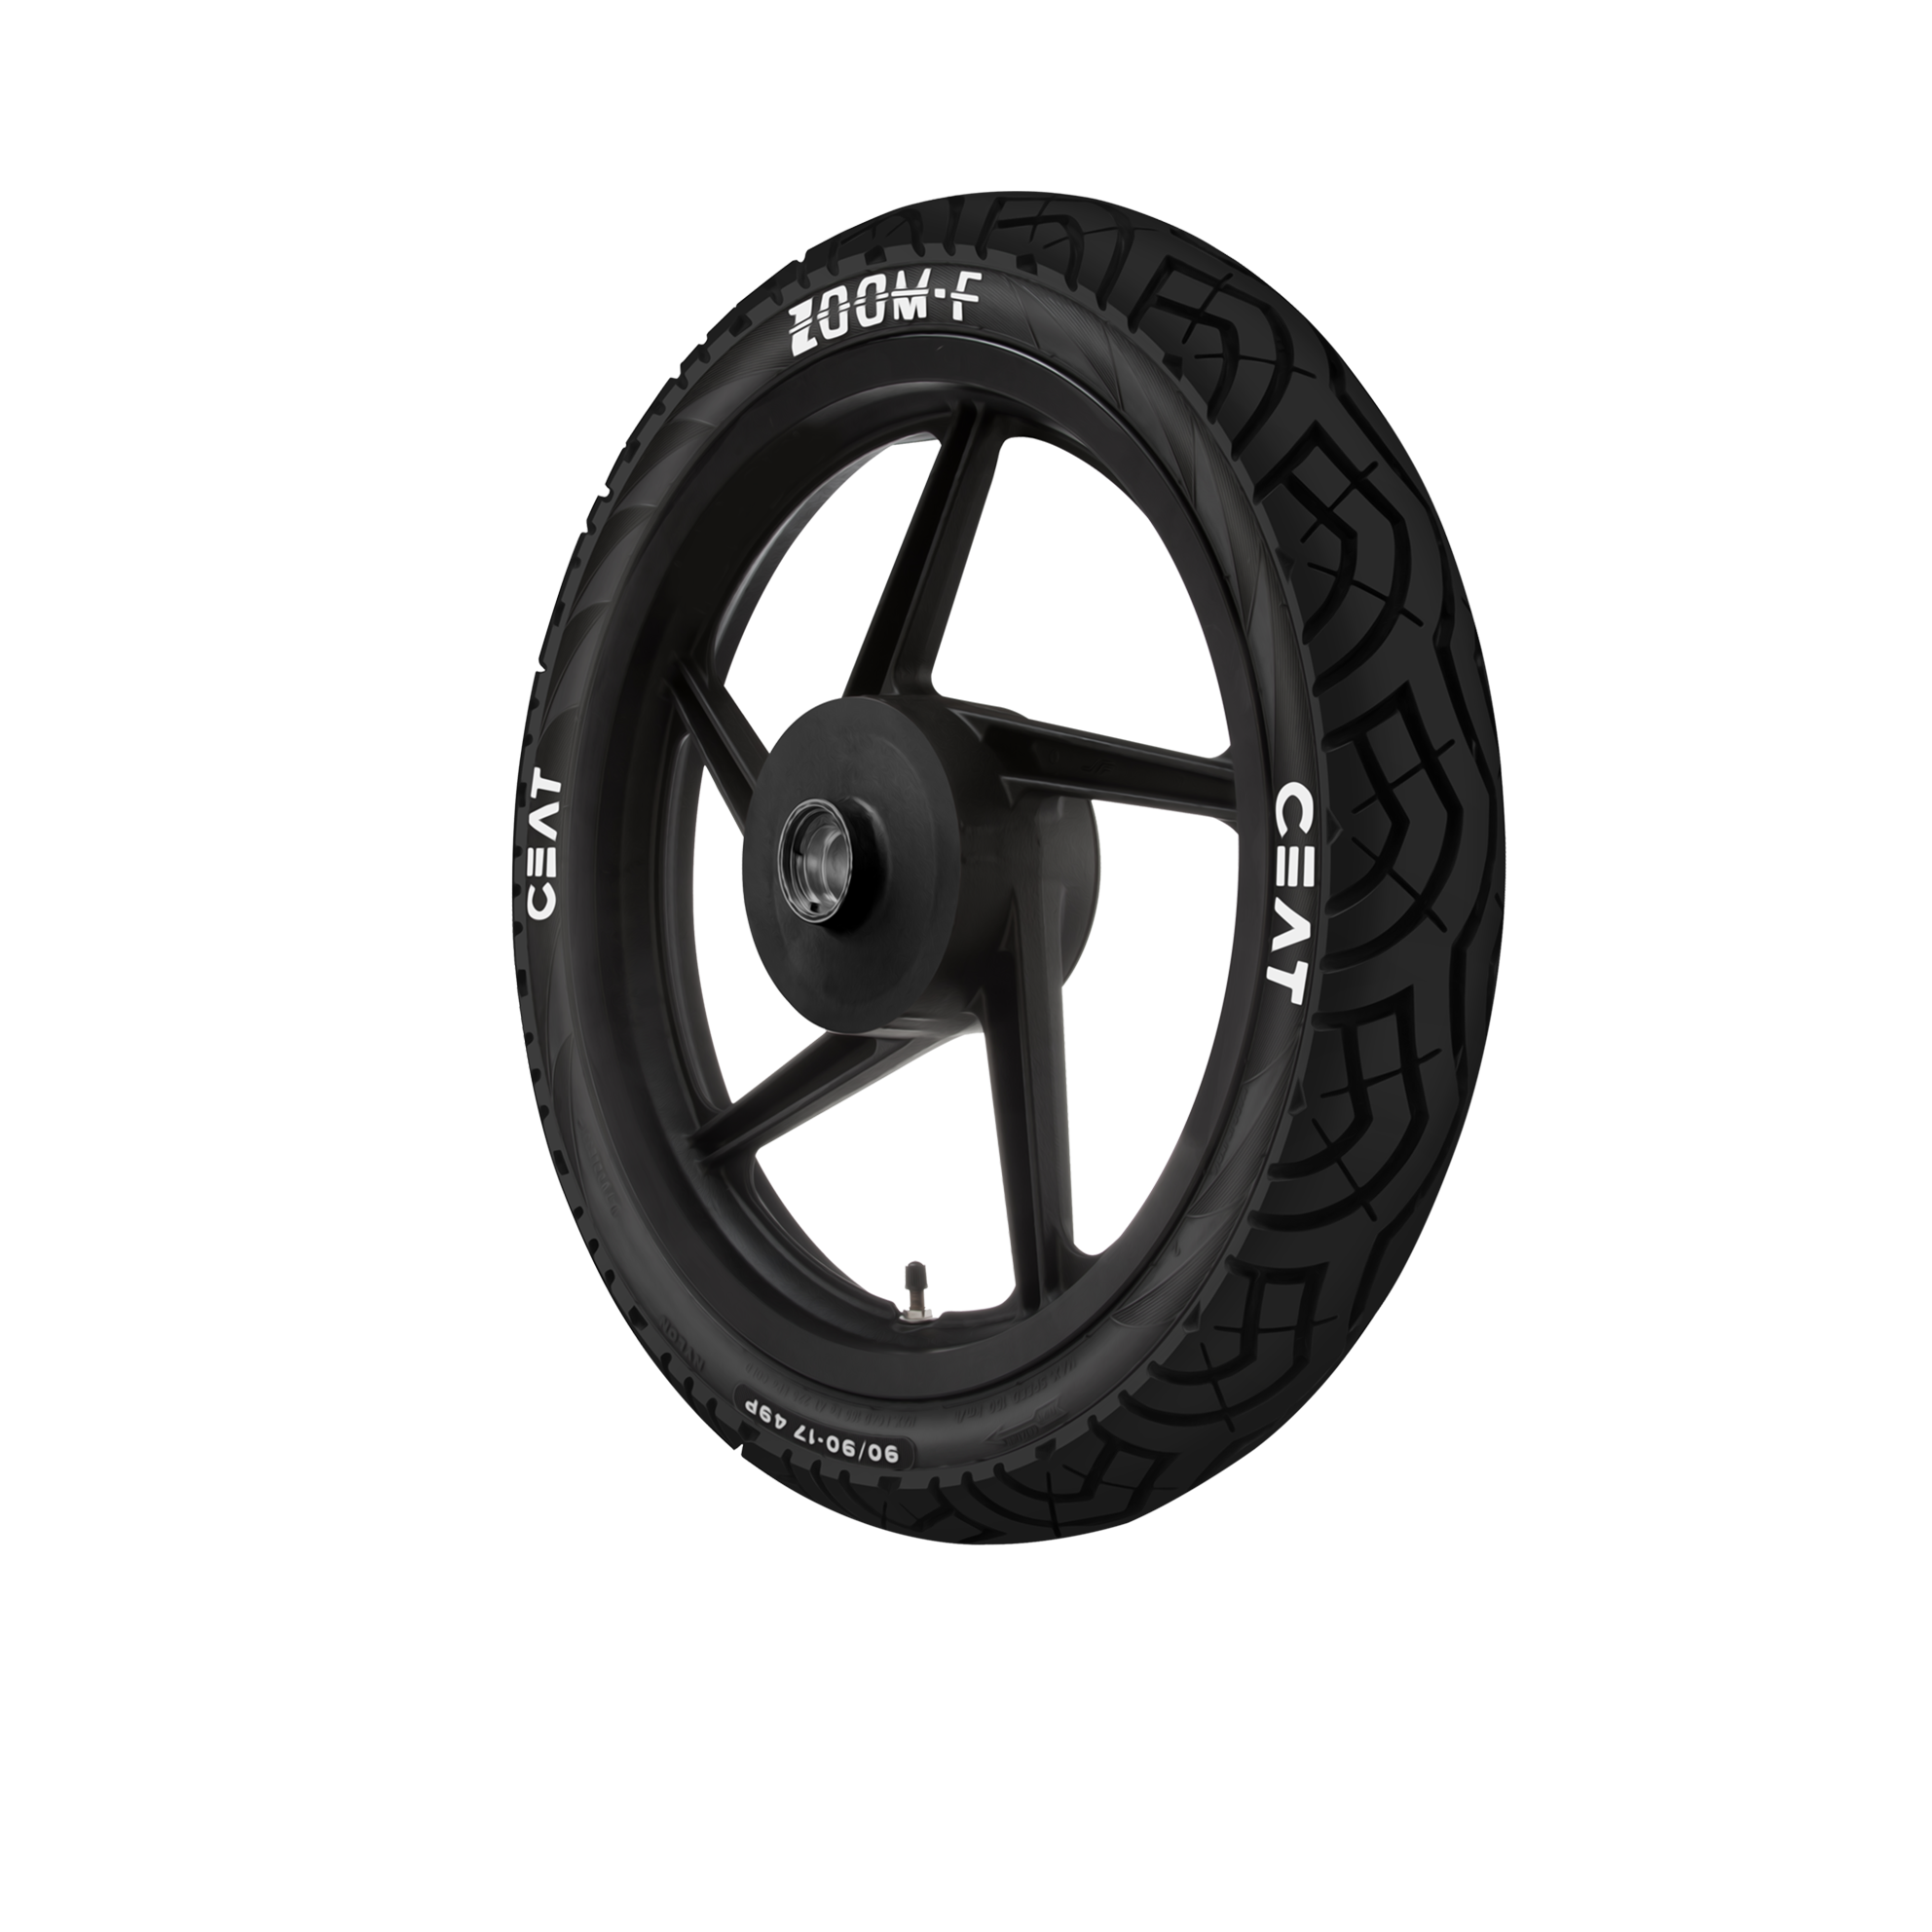 CEAT ZOOM 90/90 17 Tubeless 49 P Front Two-Wheeler Tyre